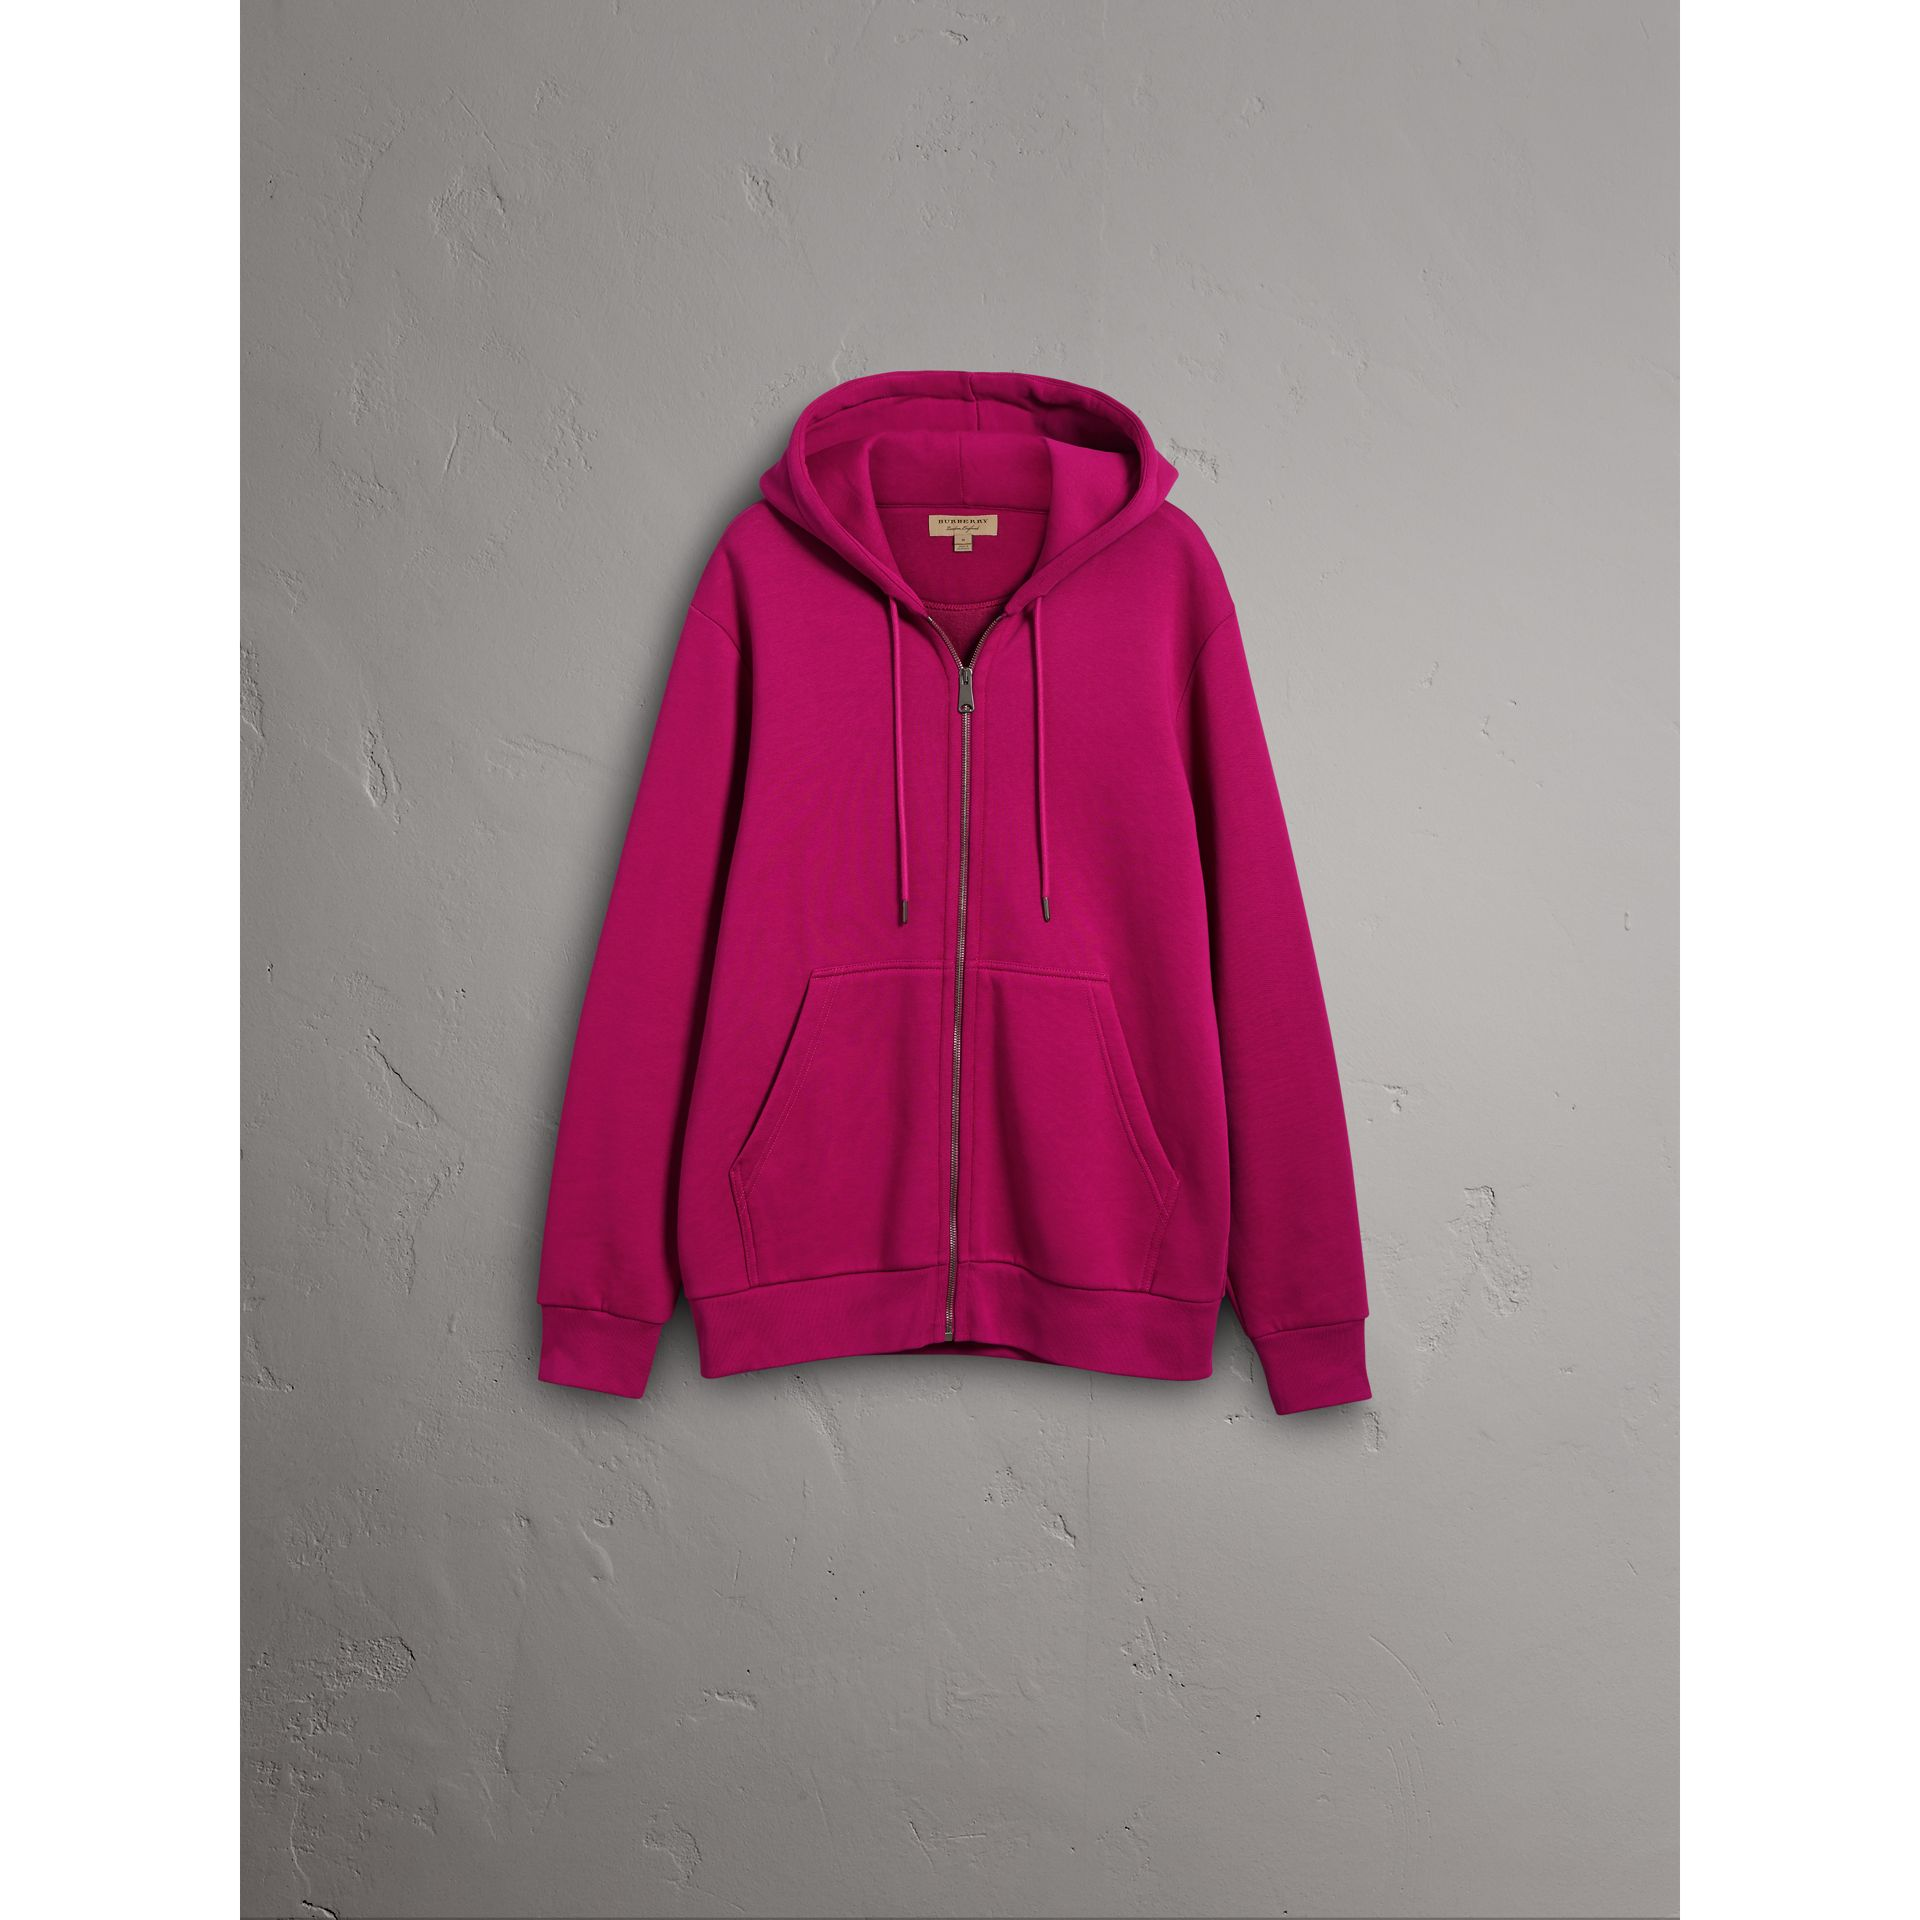 Cotton Jersey Zip-front Hooded Top in Bright Fuchsia - Men | Burberry United Kingdom - gallery image 1